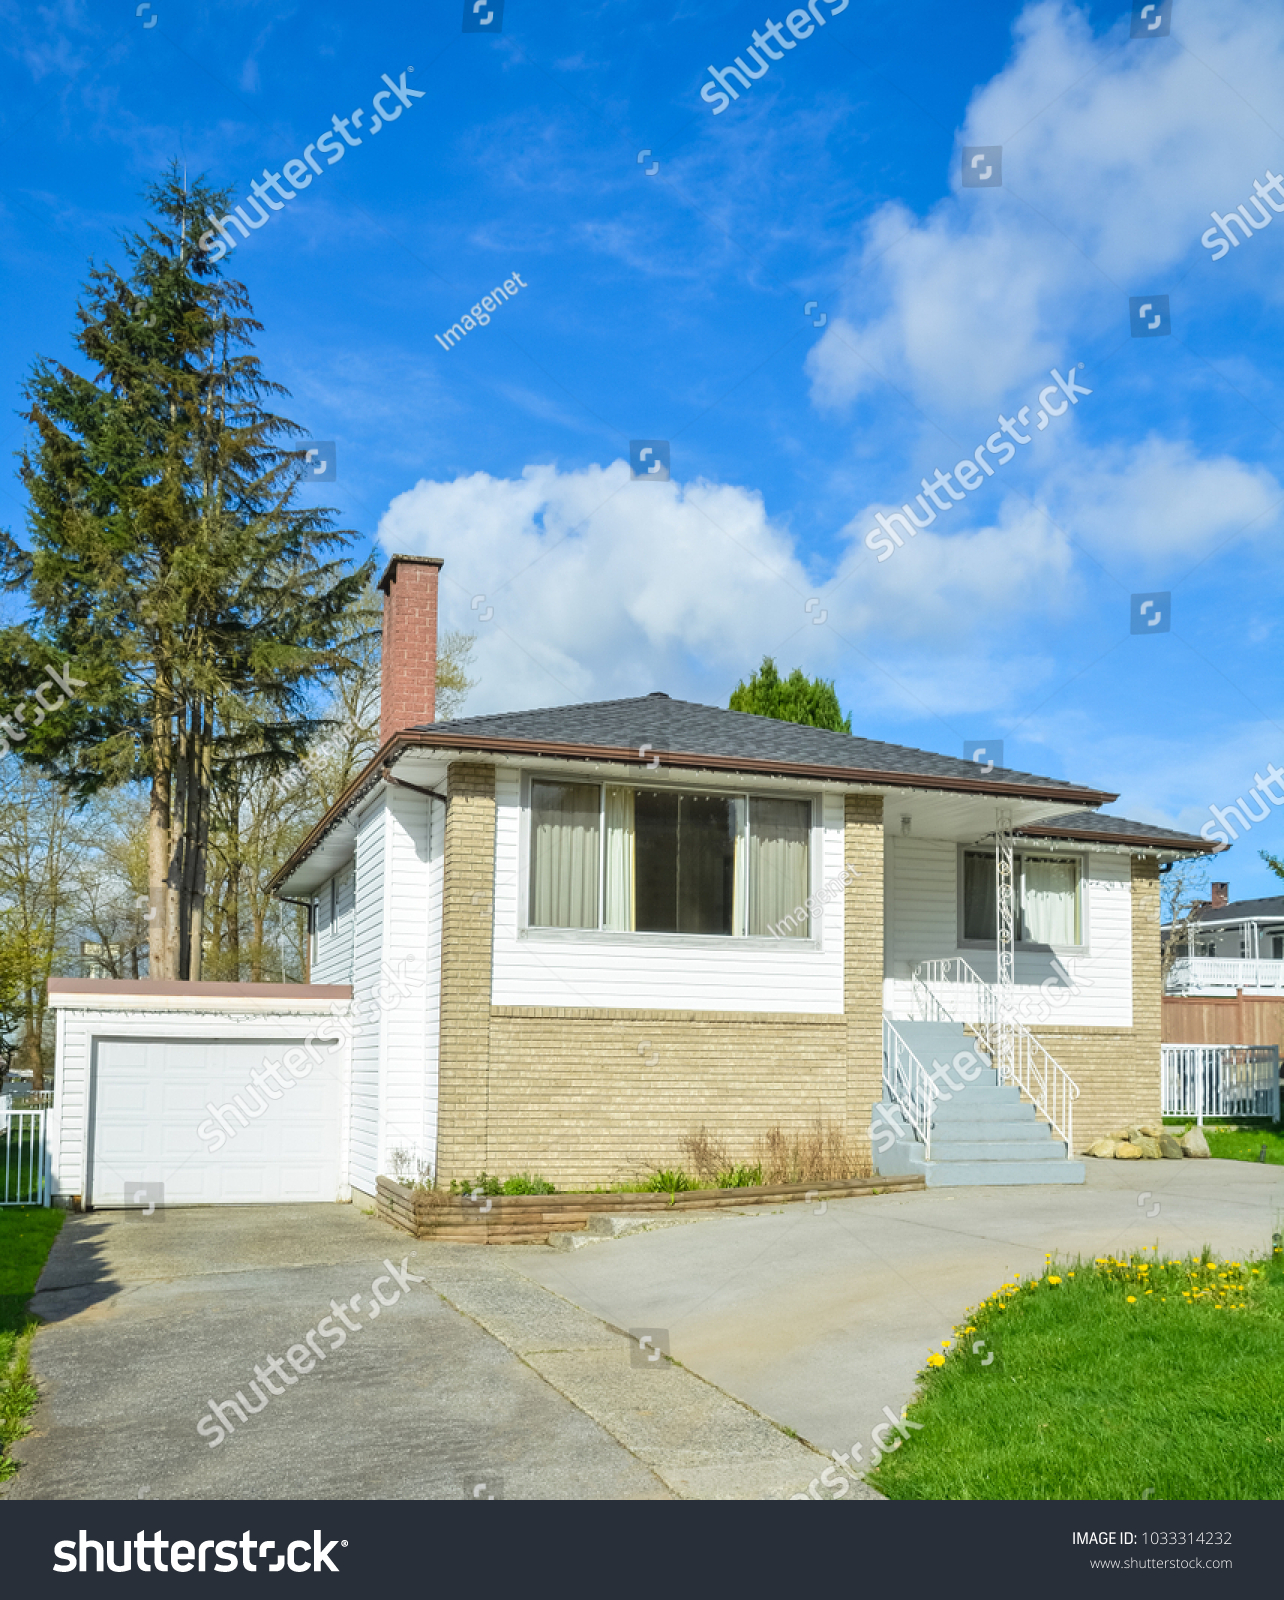 Small Residential House Concrete Driveway Front Stock Photo Edit Now 1033314232